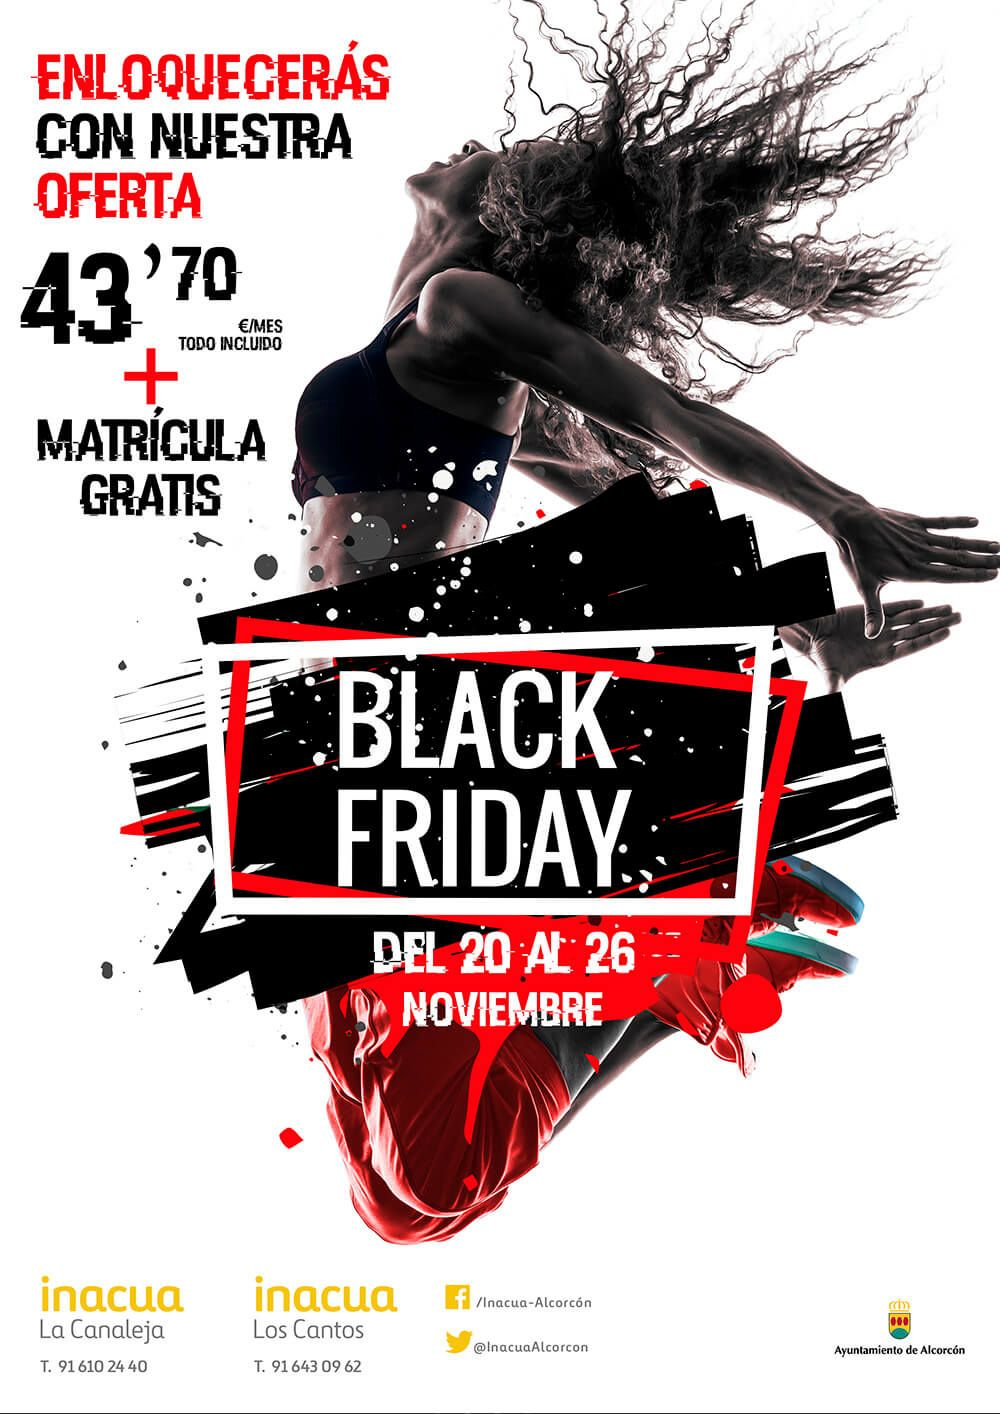 socios alcorcon basket black friday inacua